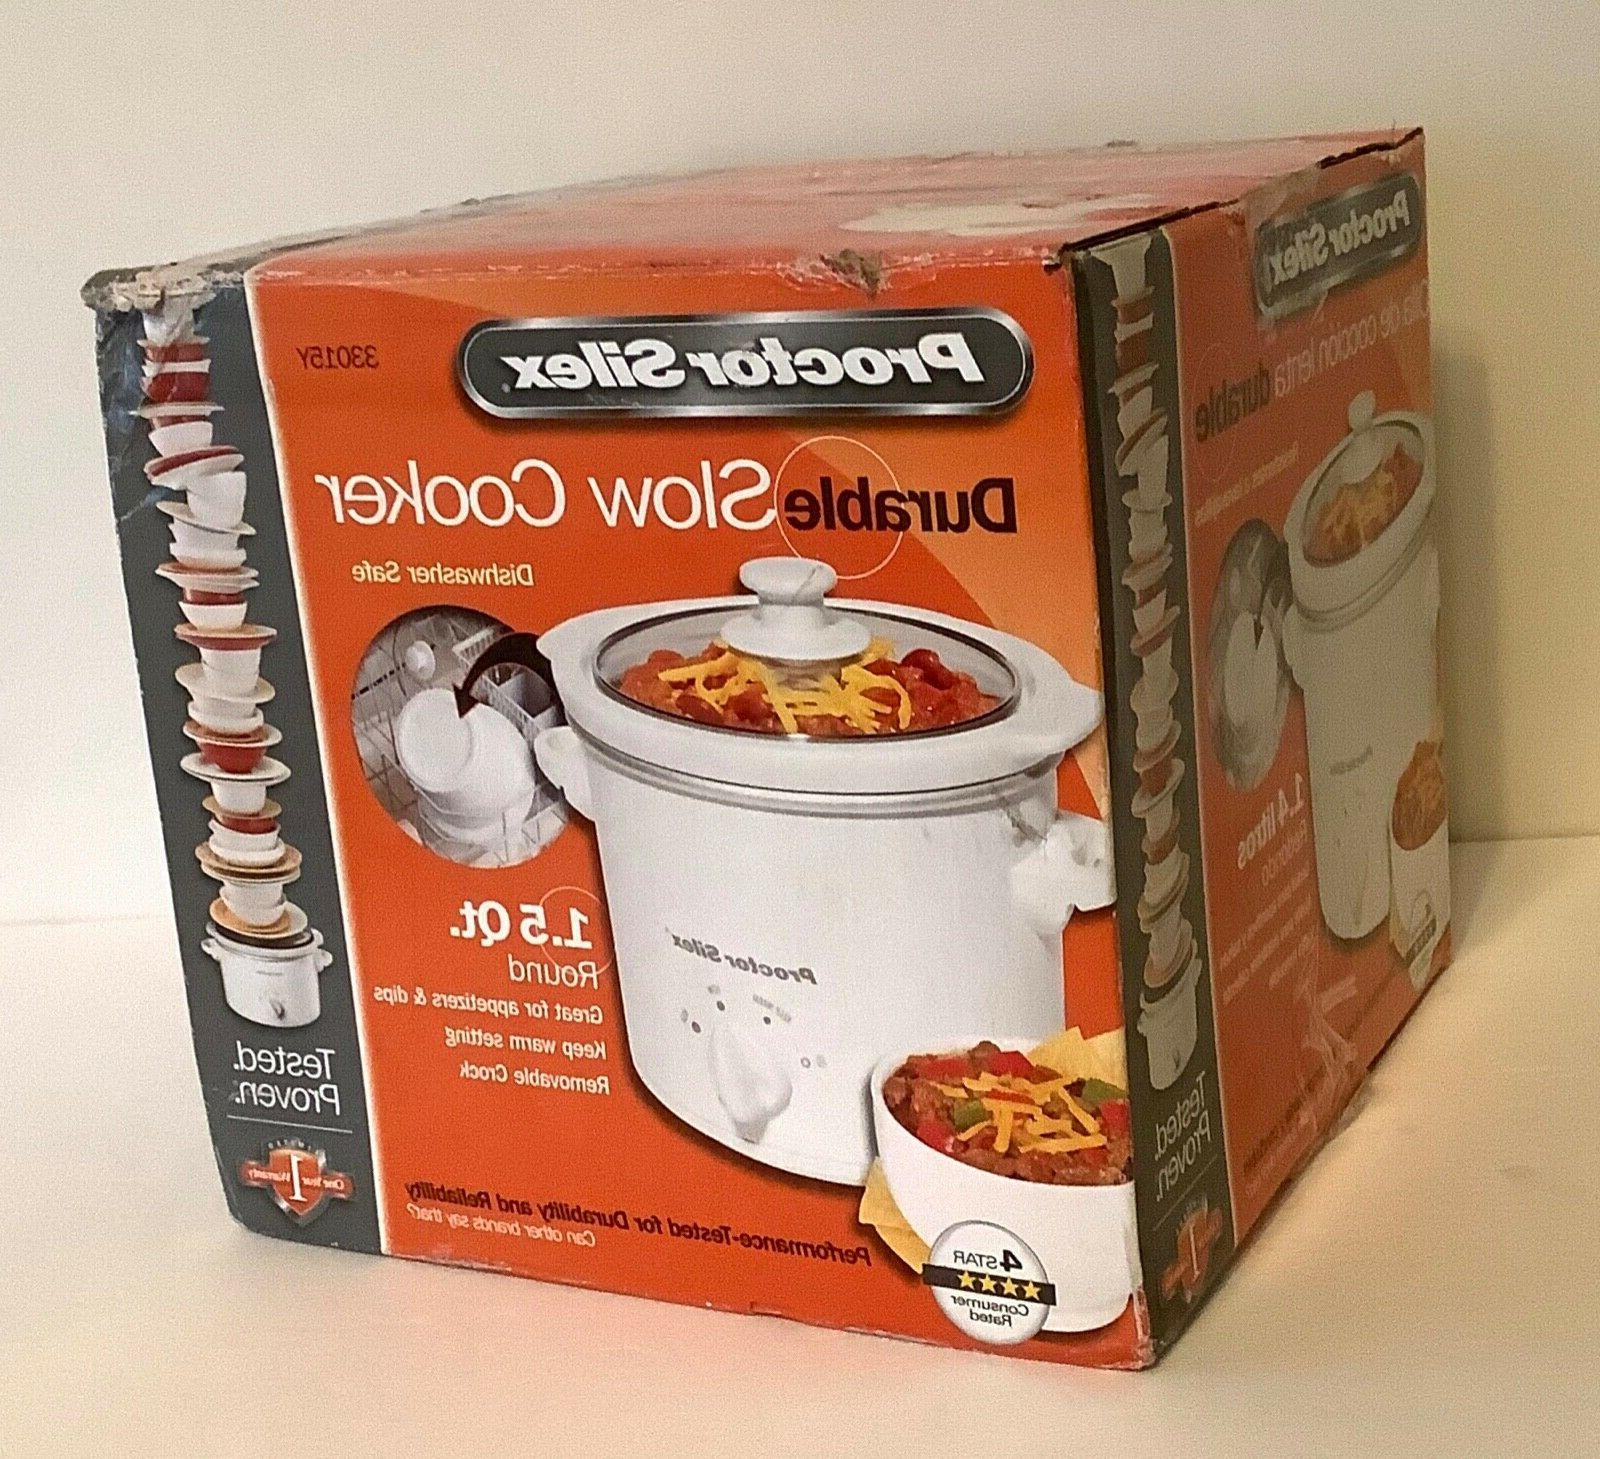 Brand New Durable 1.5 Slow Cooker is